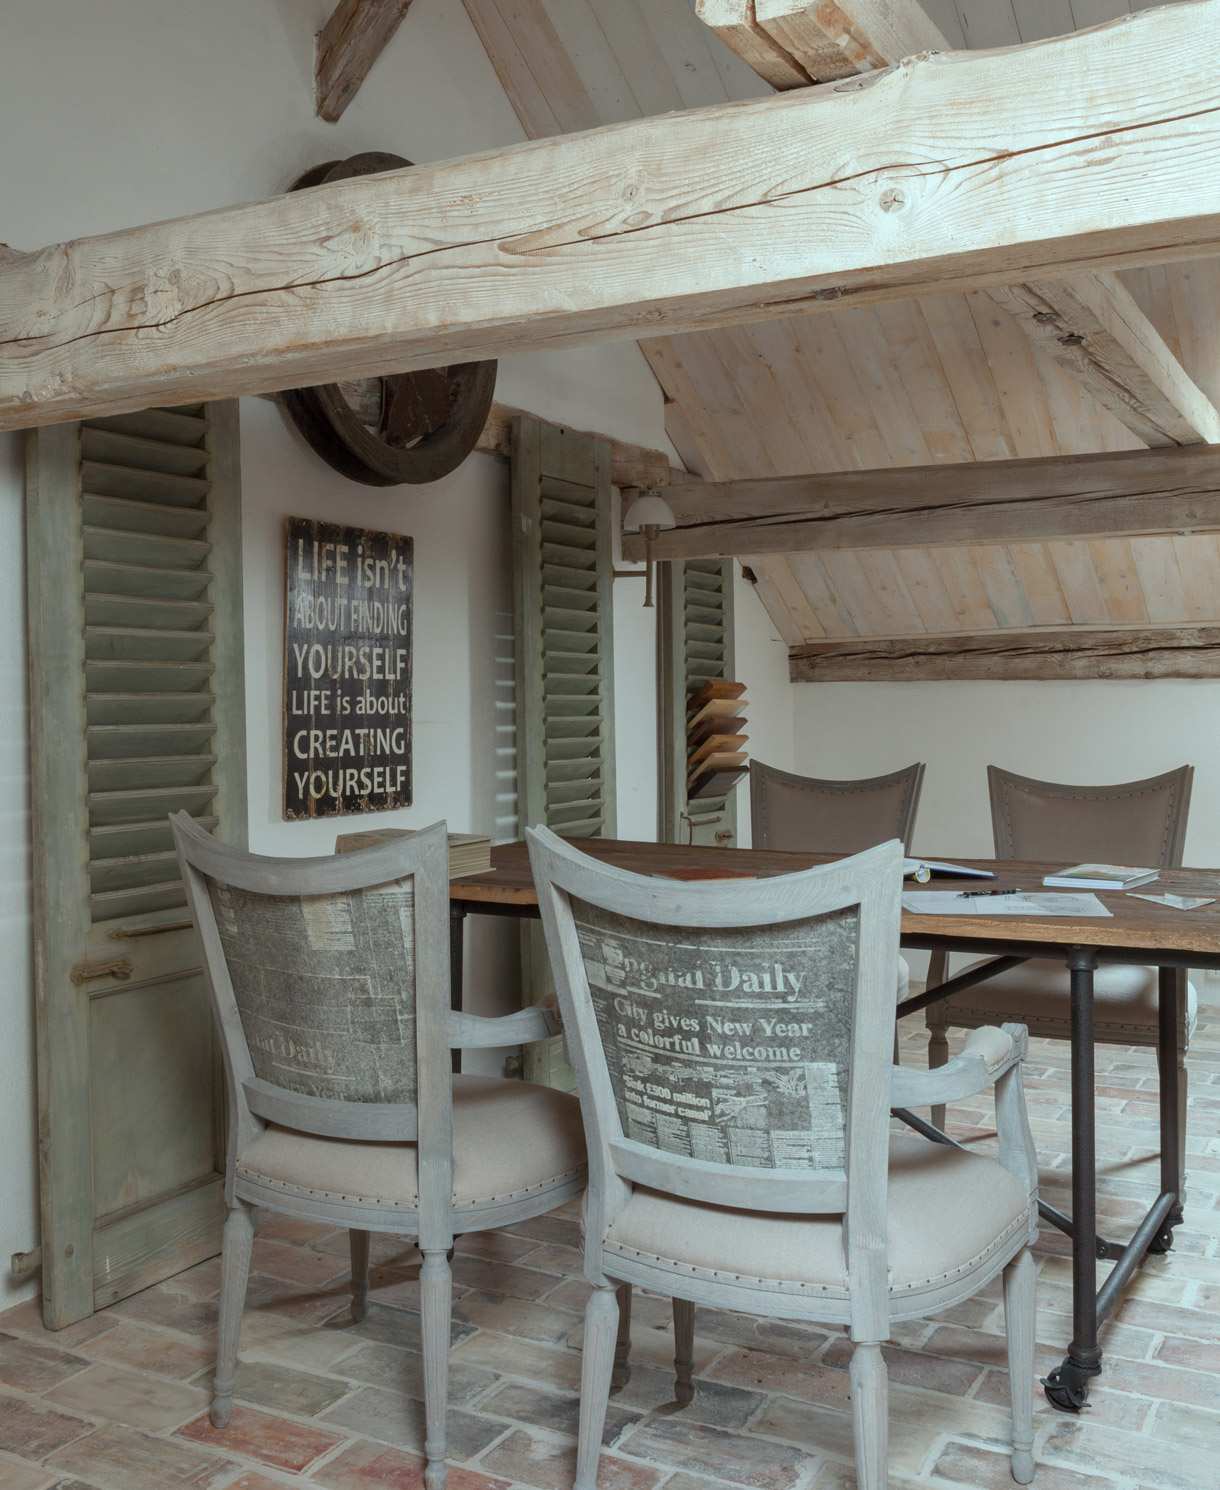 ferme r nov e visite d 39 une ancienne ferme restaur e maison cr ative. Black Bedroom Furniture Sets. Home Design Ideas